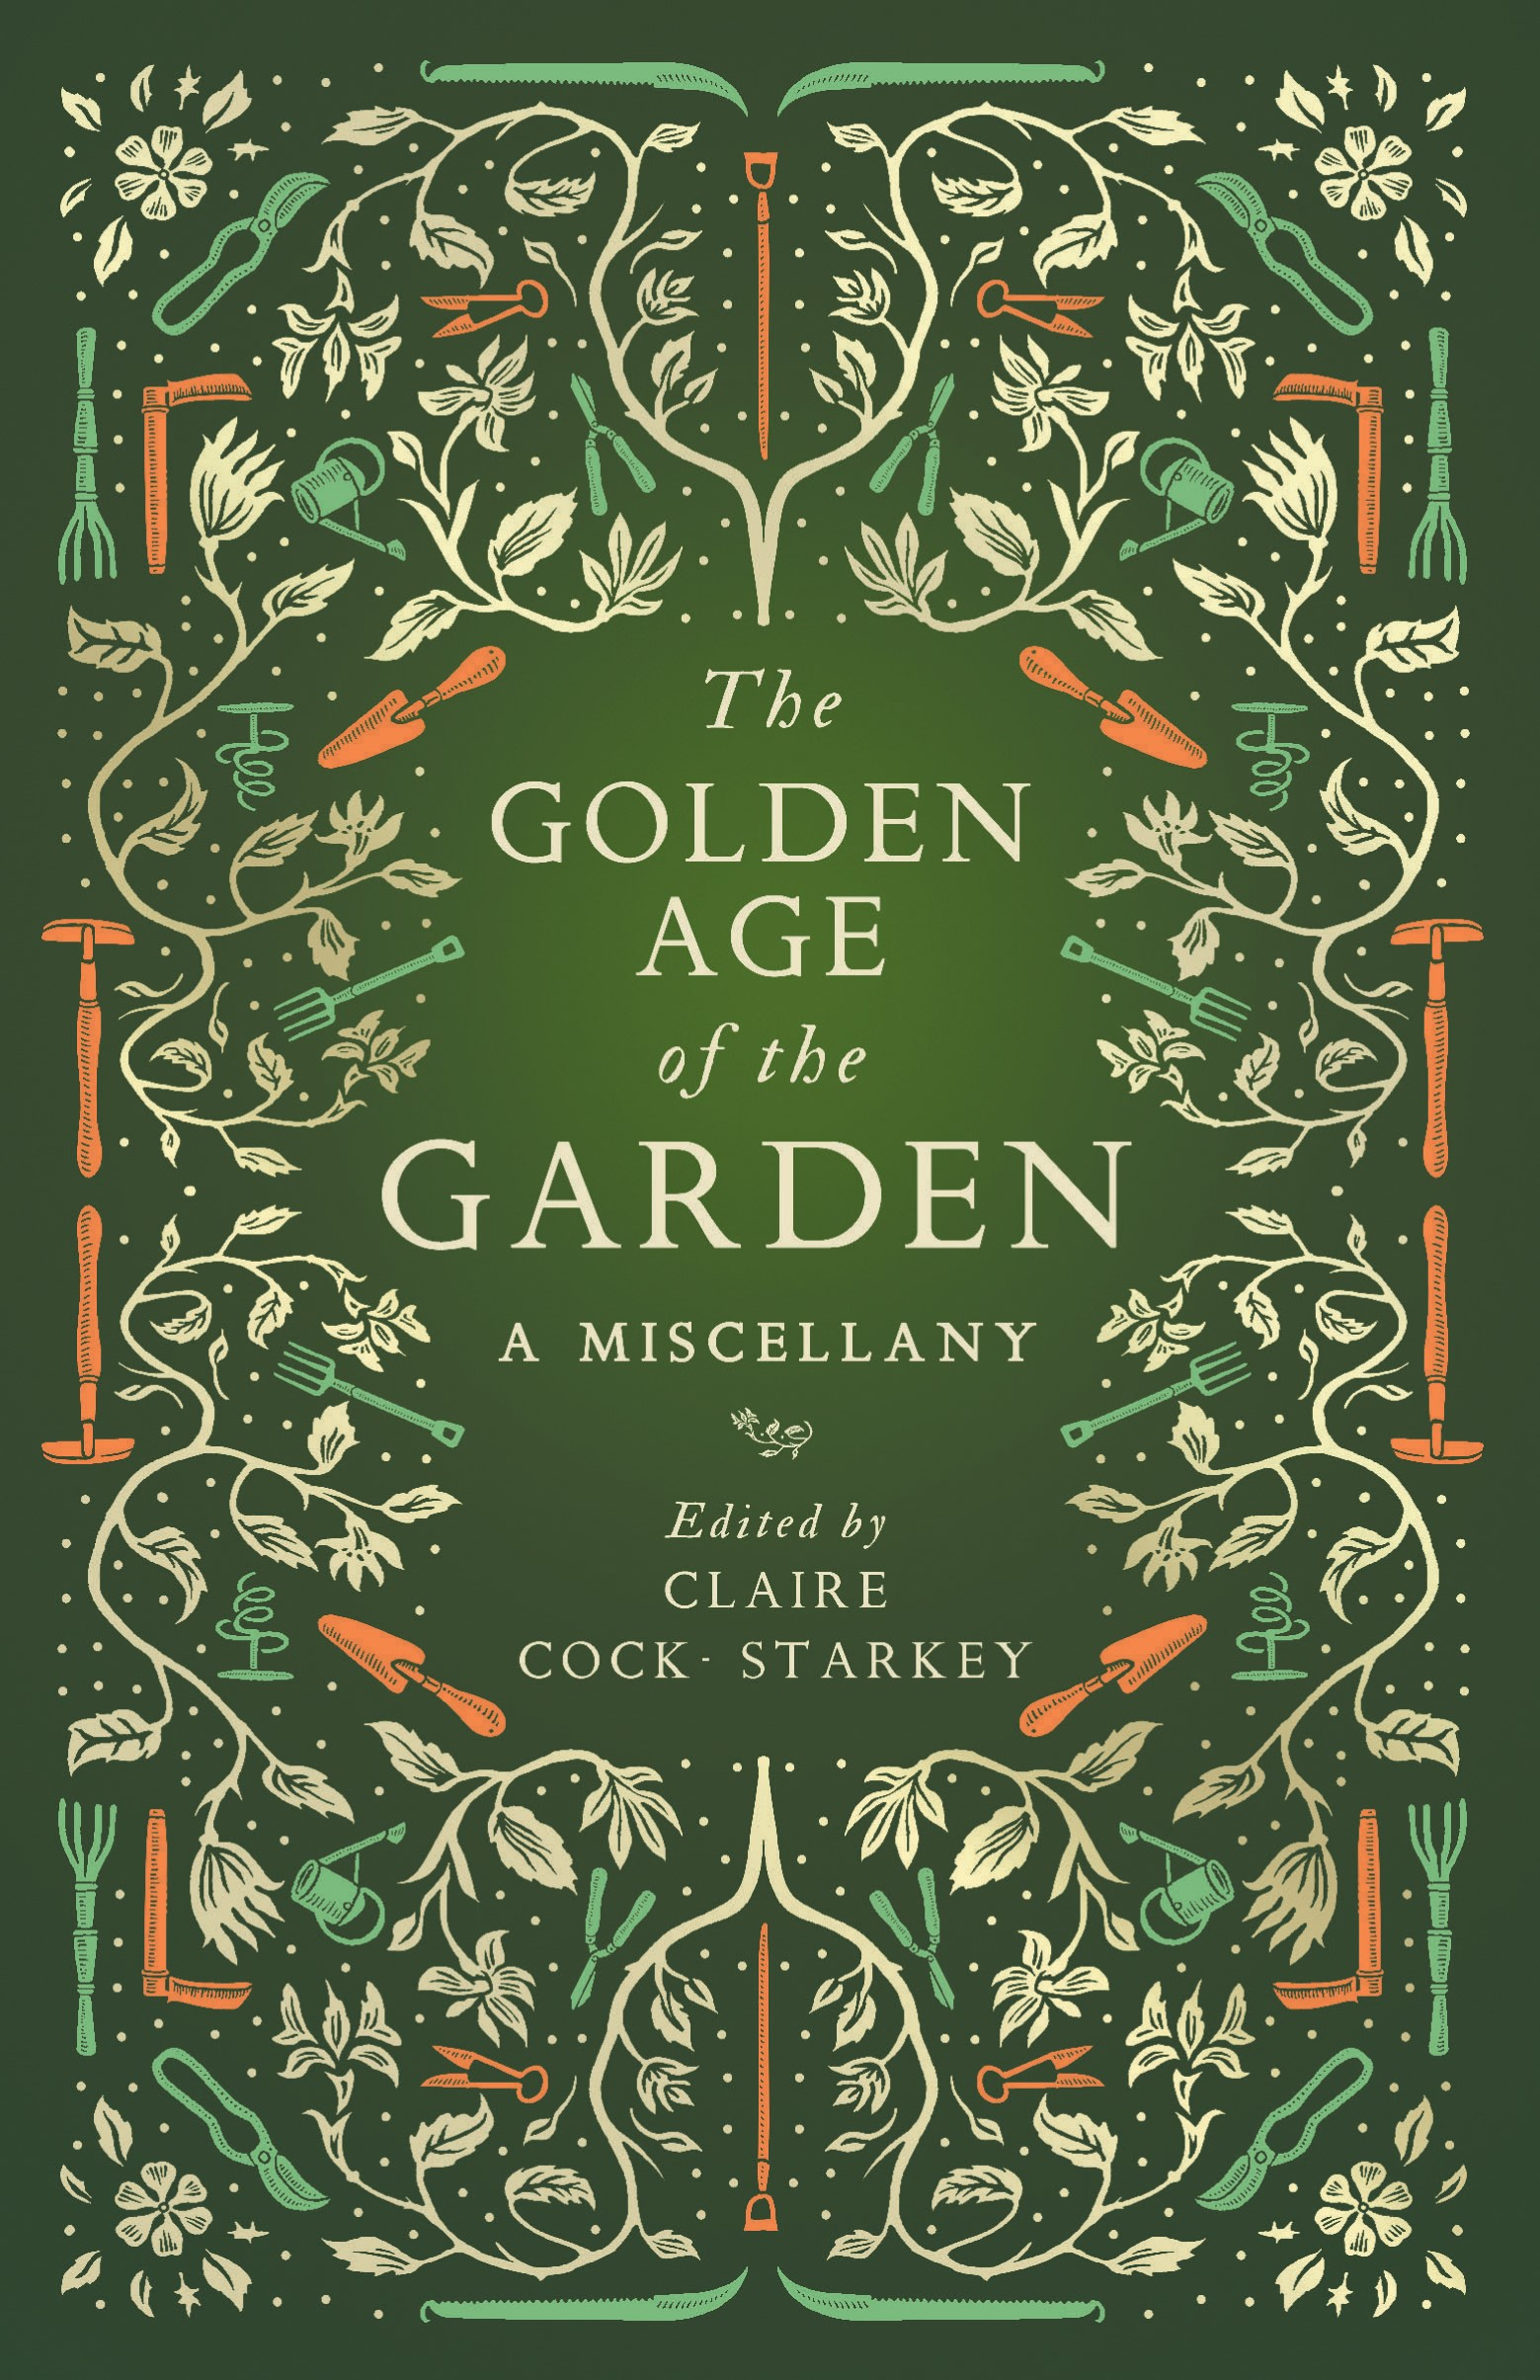 Book cover design for The Golden Age of Gardening by Claire Cock-Starkey